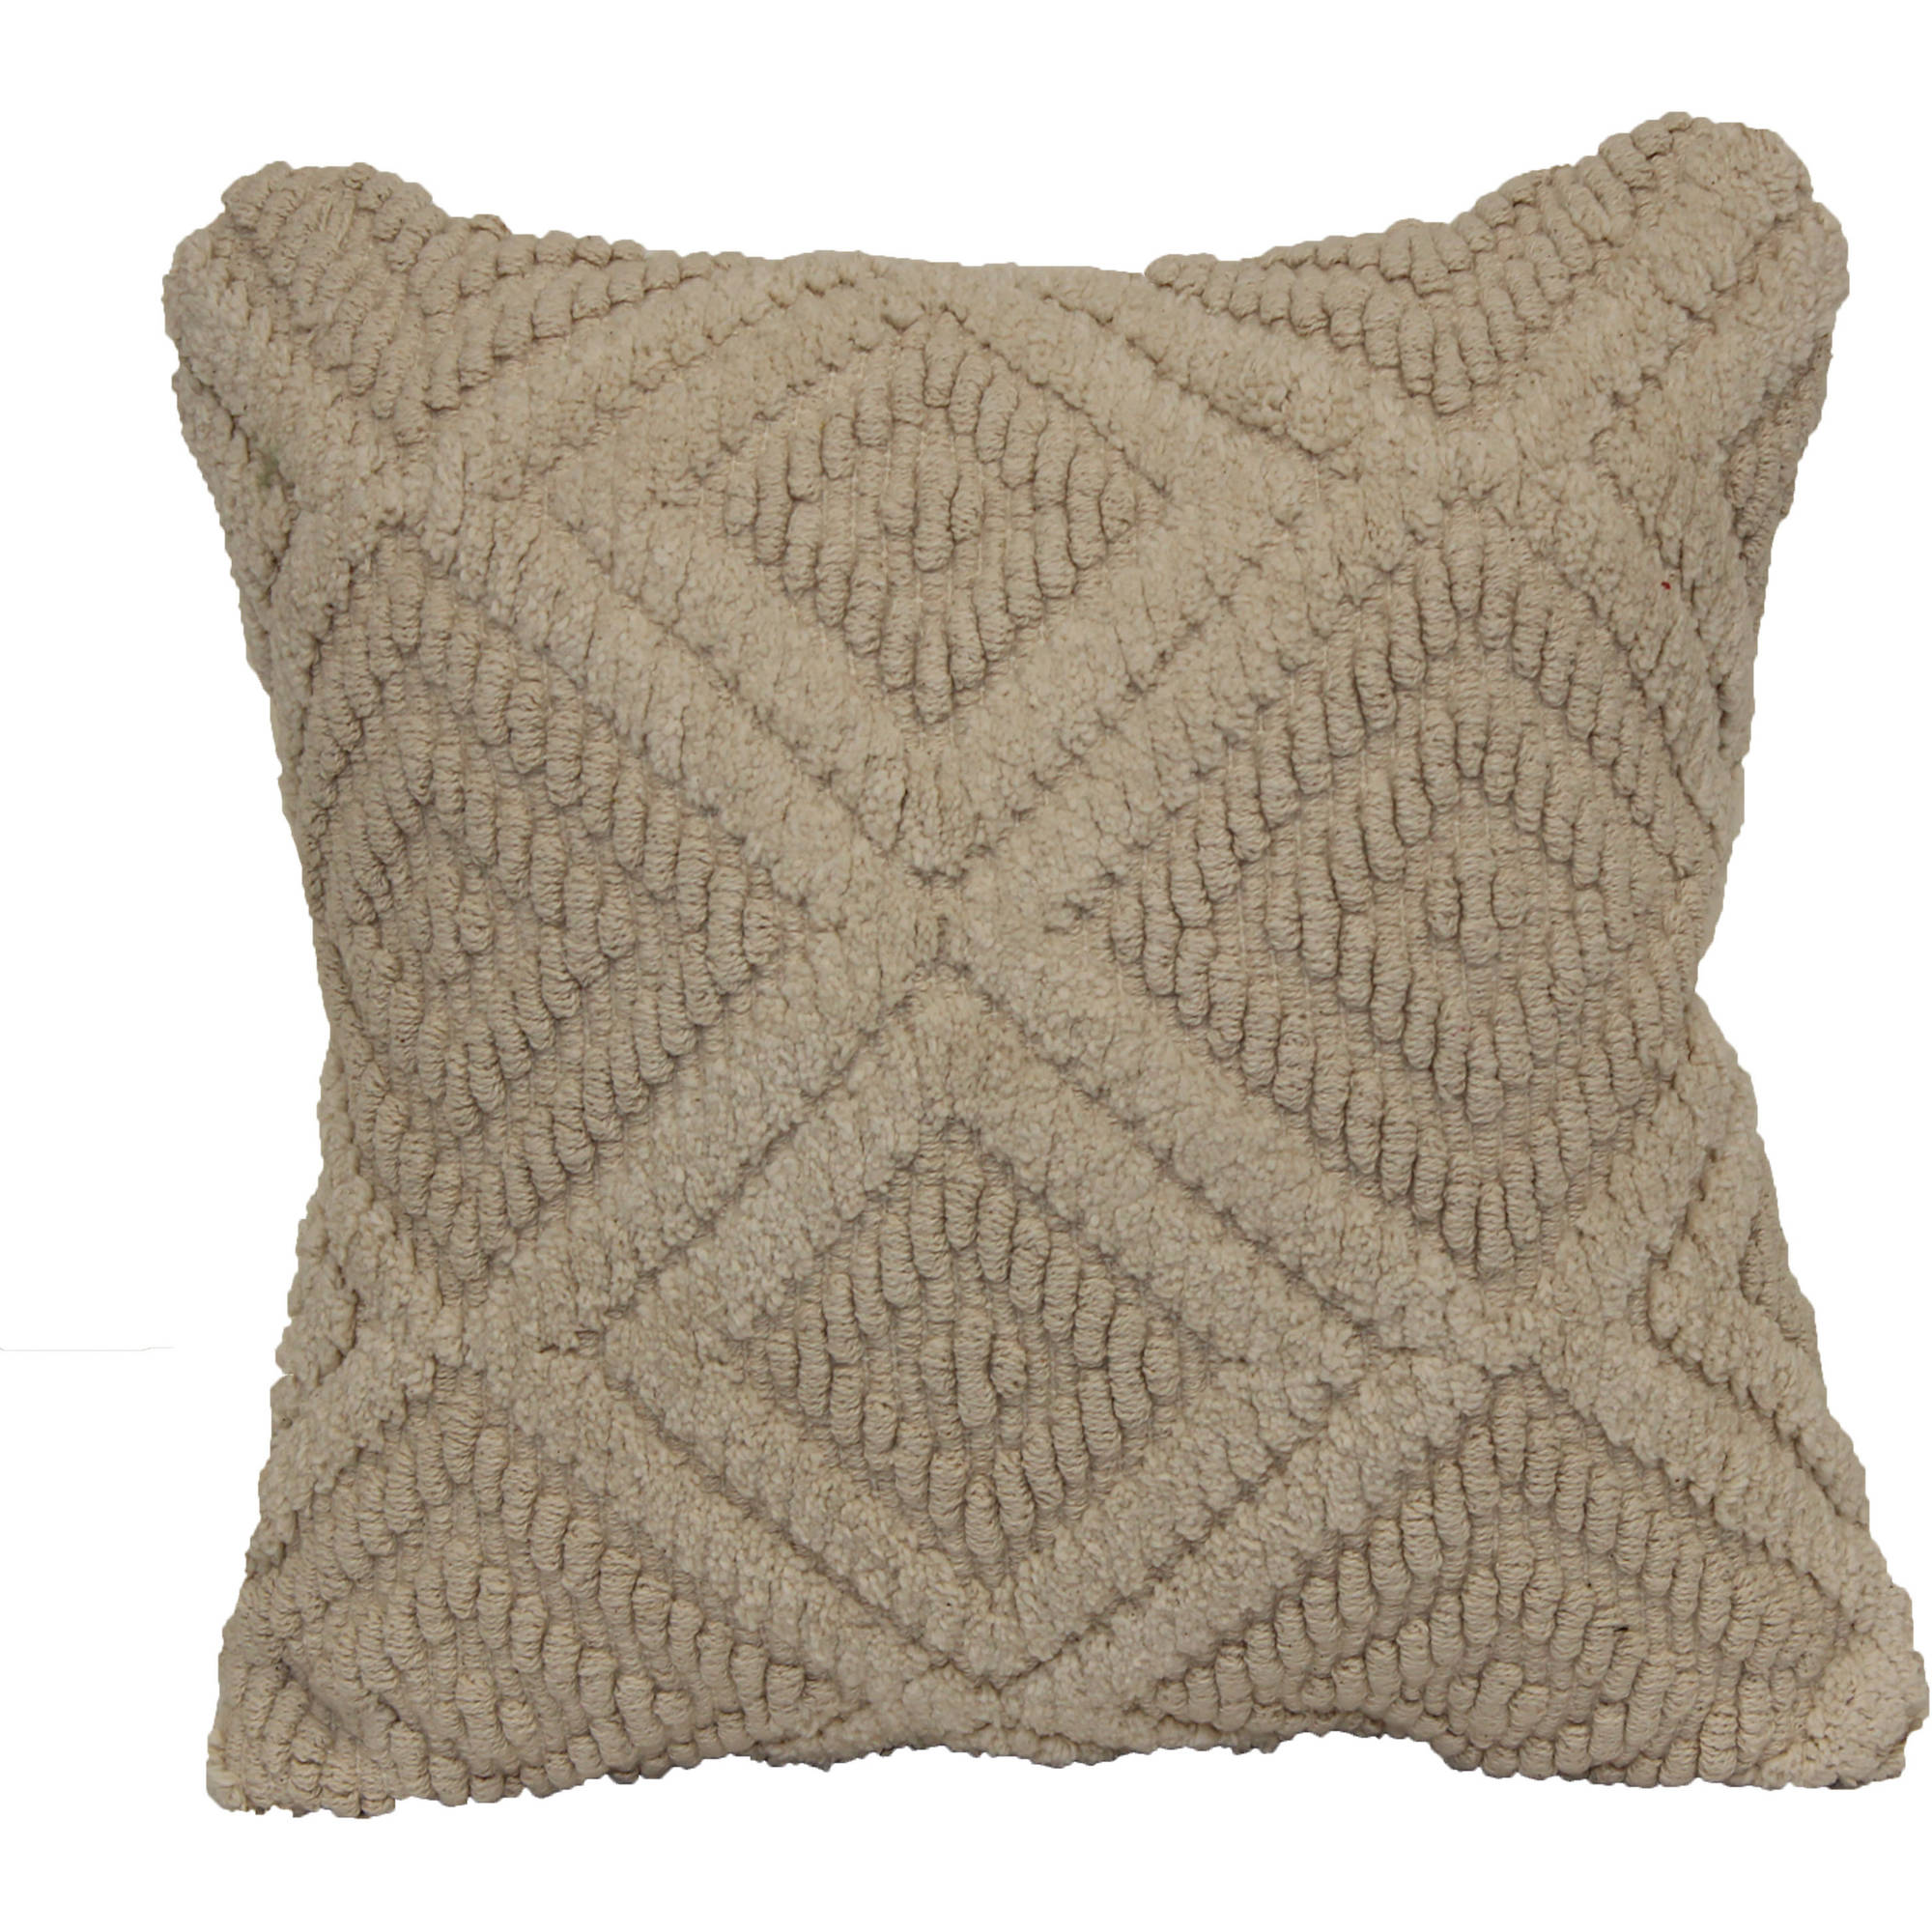 Better Homes and Gardens Decorative Pillow with Natural Diamonds by Brentwood Originals